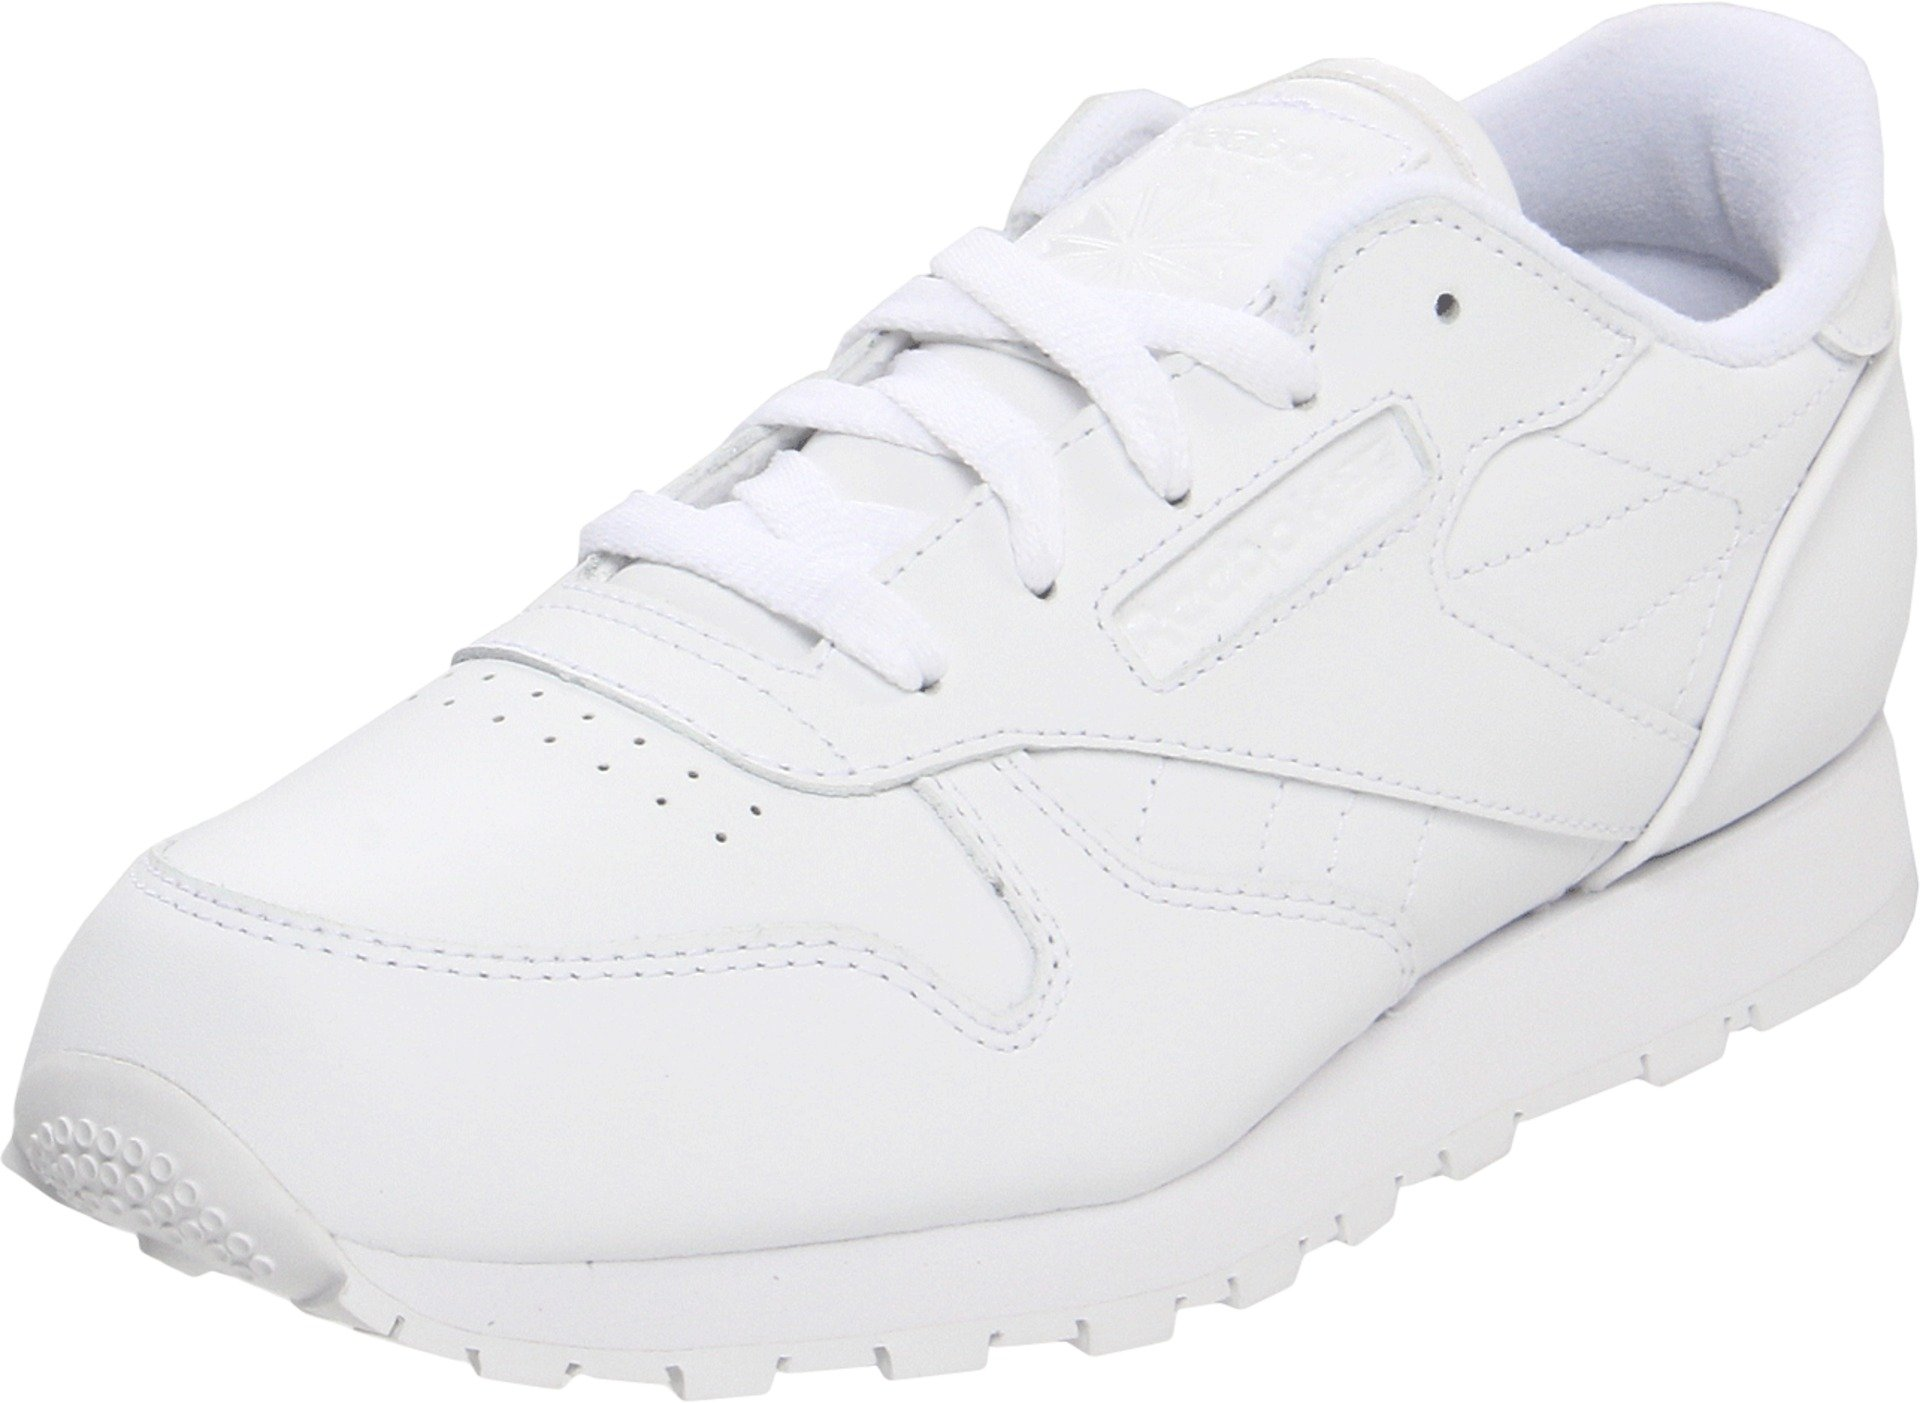 hot sale online 49f21 912ea Get Quotations · Reebok Classic Leather Shoe (Little Kid)